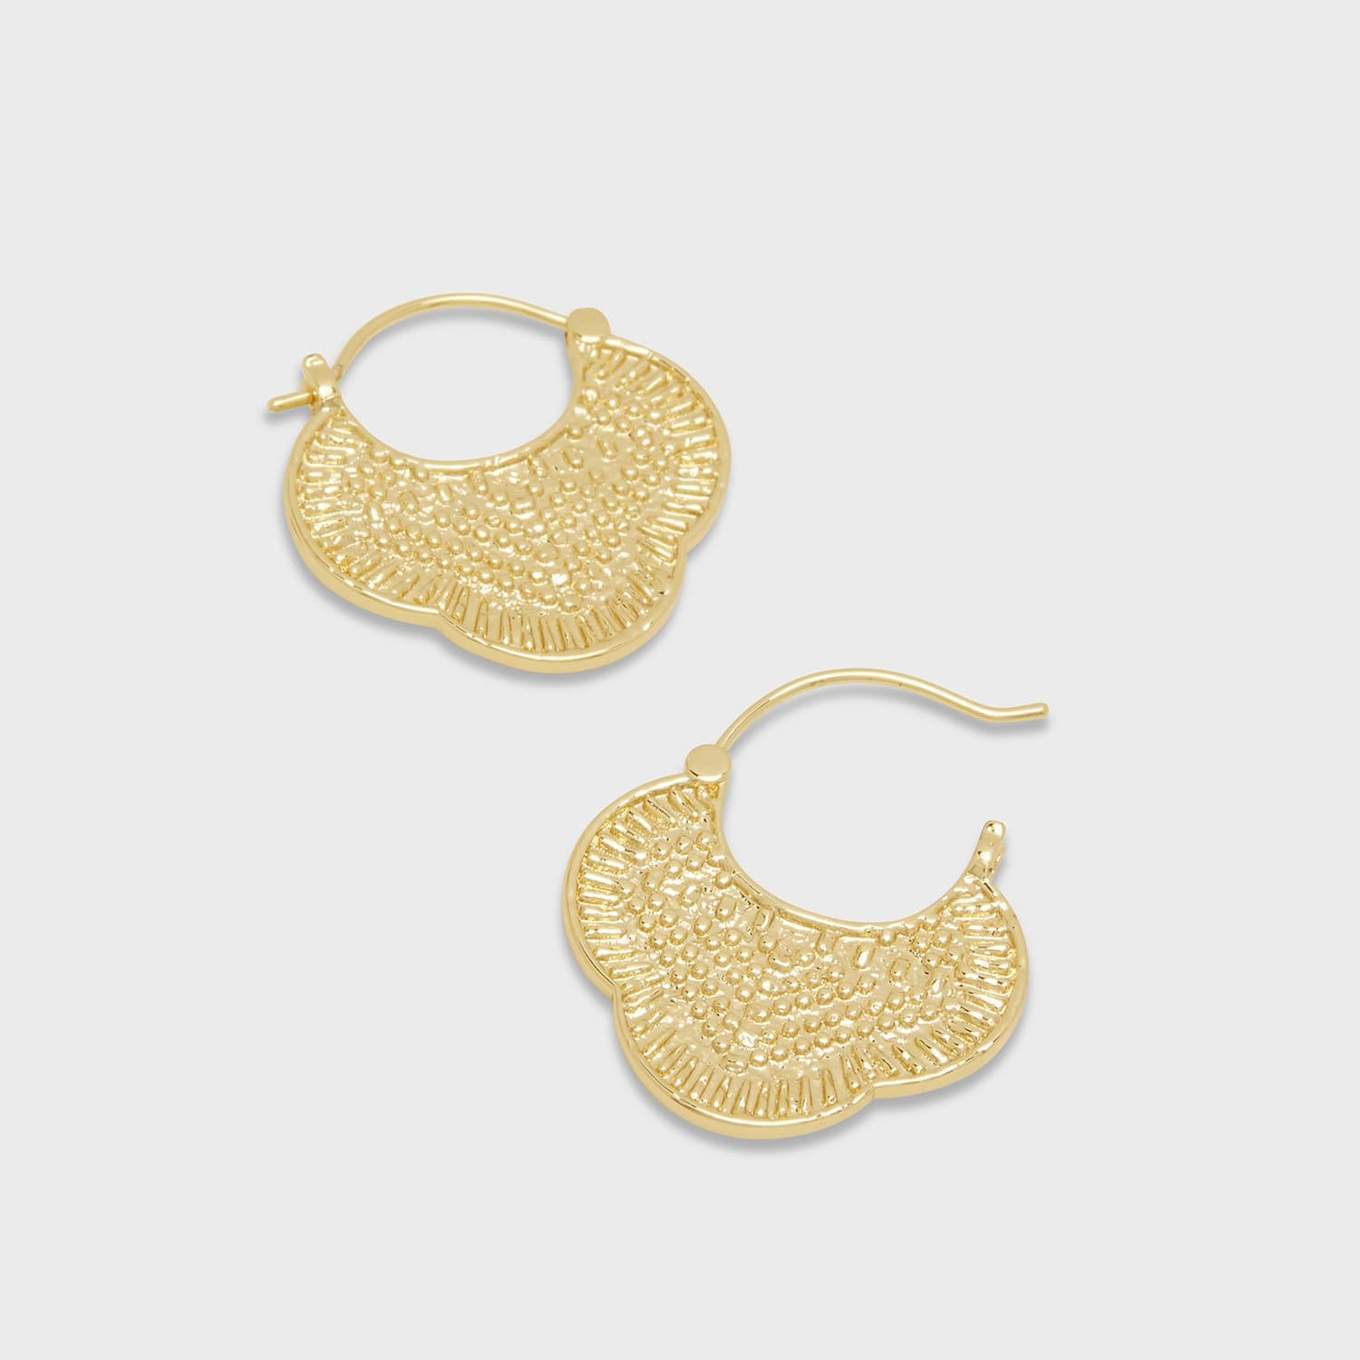 "For those post-beach days when only a topknot will do, show off these golden textured earrings. 15/16"" profile diameter Hinge closure 18k gold plated brass Avoid contact with anything containing derivatives of alcohol"